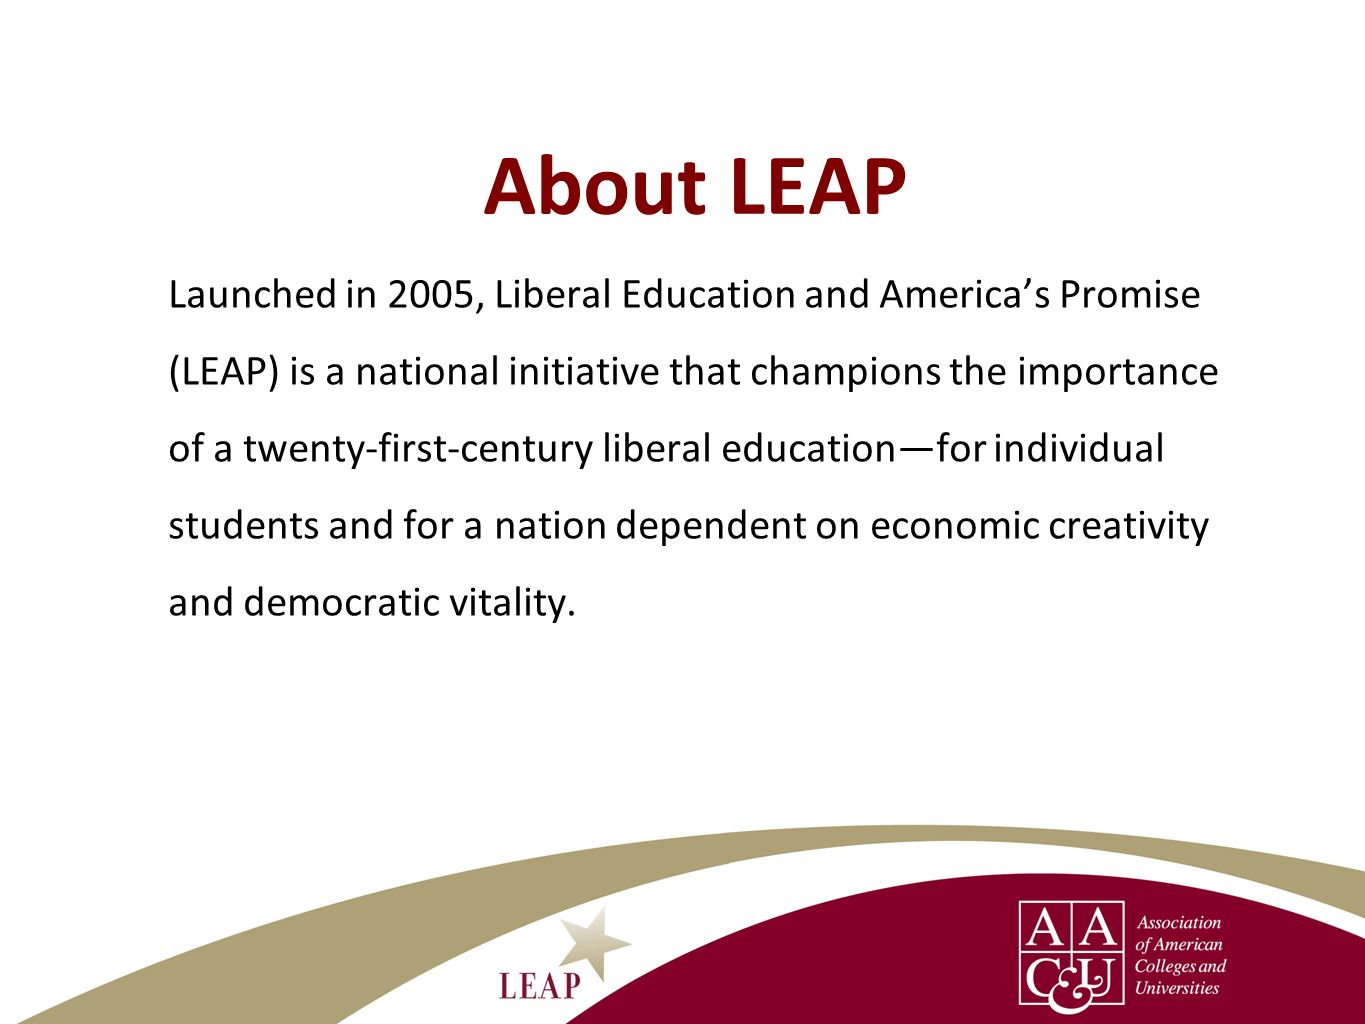 LEAP Areas of Work Public Advocacyleadership through National Leadership Council, Presidents Trust, and work in selected LEAP states to make the case for liberal education and importance of essential learning outcomes Campus Actionnetworking and technical assistance to support campus efforts to increase all students achievement of essential learning outcomes and to communicate more effectively about liberal education; leadership through the Campus Action Network of institutions committed to advancing liberal education for all students Authentic Evidencereports on public opinion, high-impact practices that lead to essential learning outcomes, assessment approaches that deepen student learning,and periodic reports of national data on student achievement